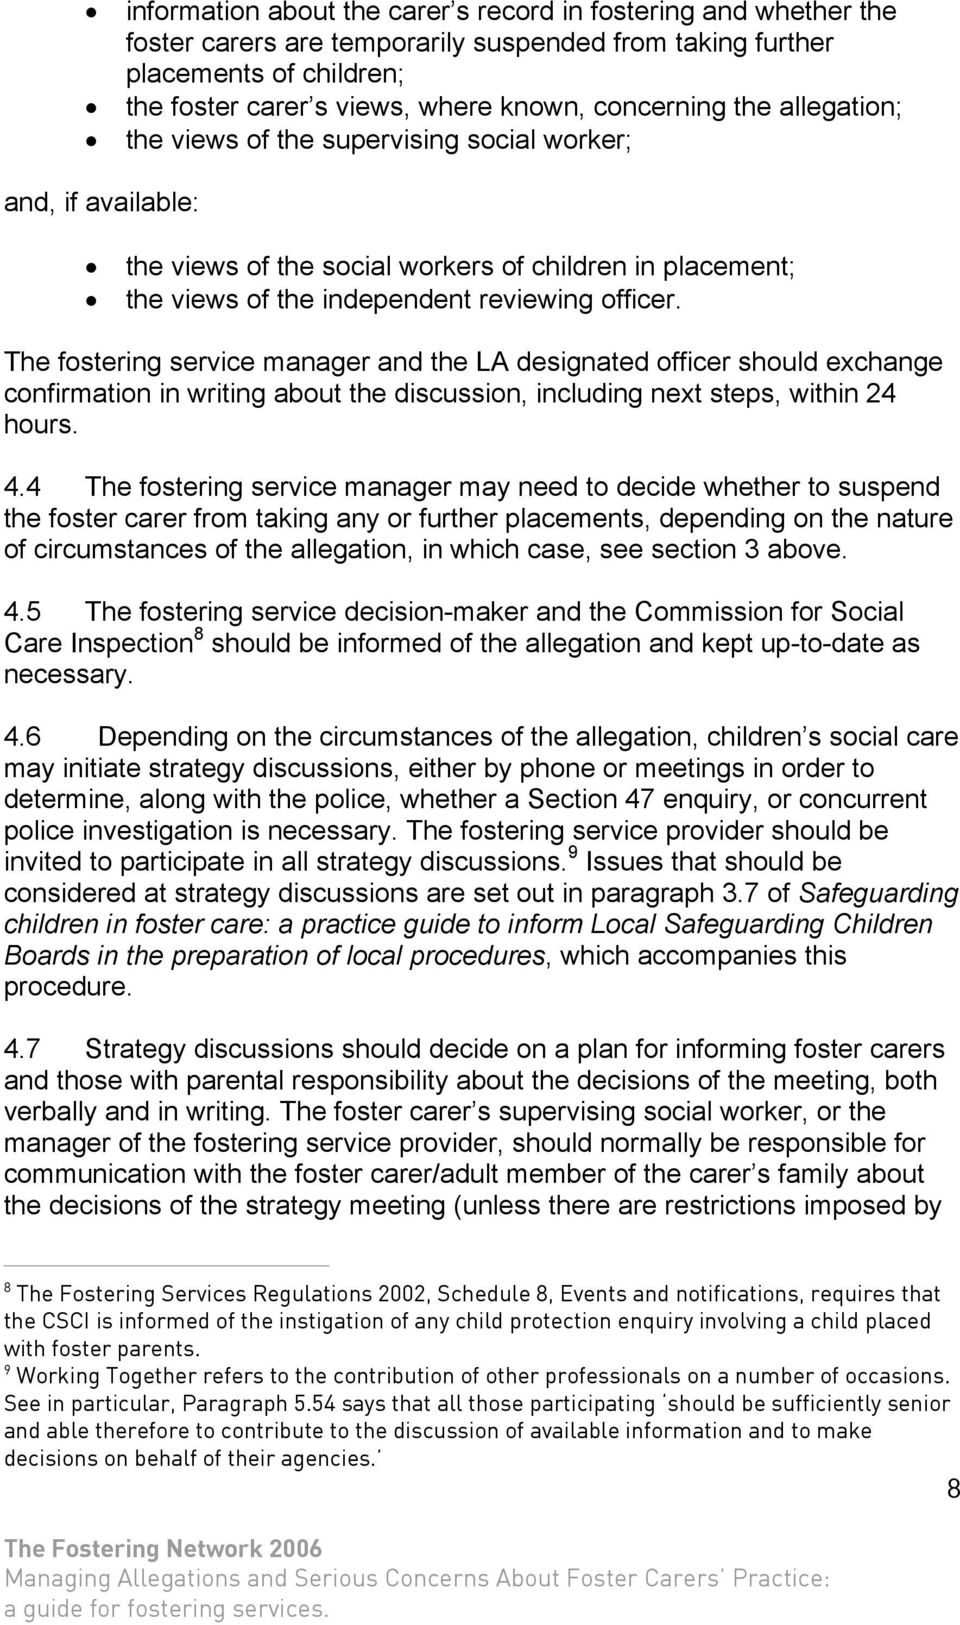 The fostering service manager and the LA designated officer should exchange confirmation in writing about the discussion, including next steps, within 24 hours. 4.